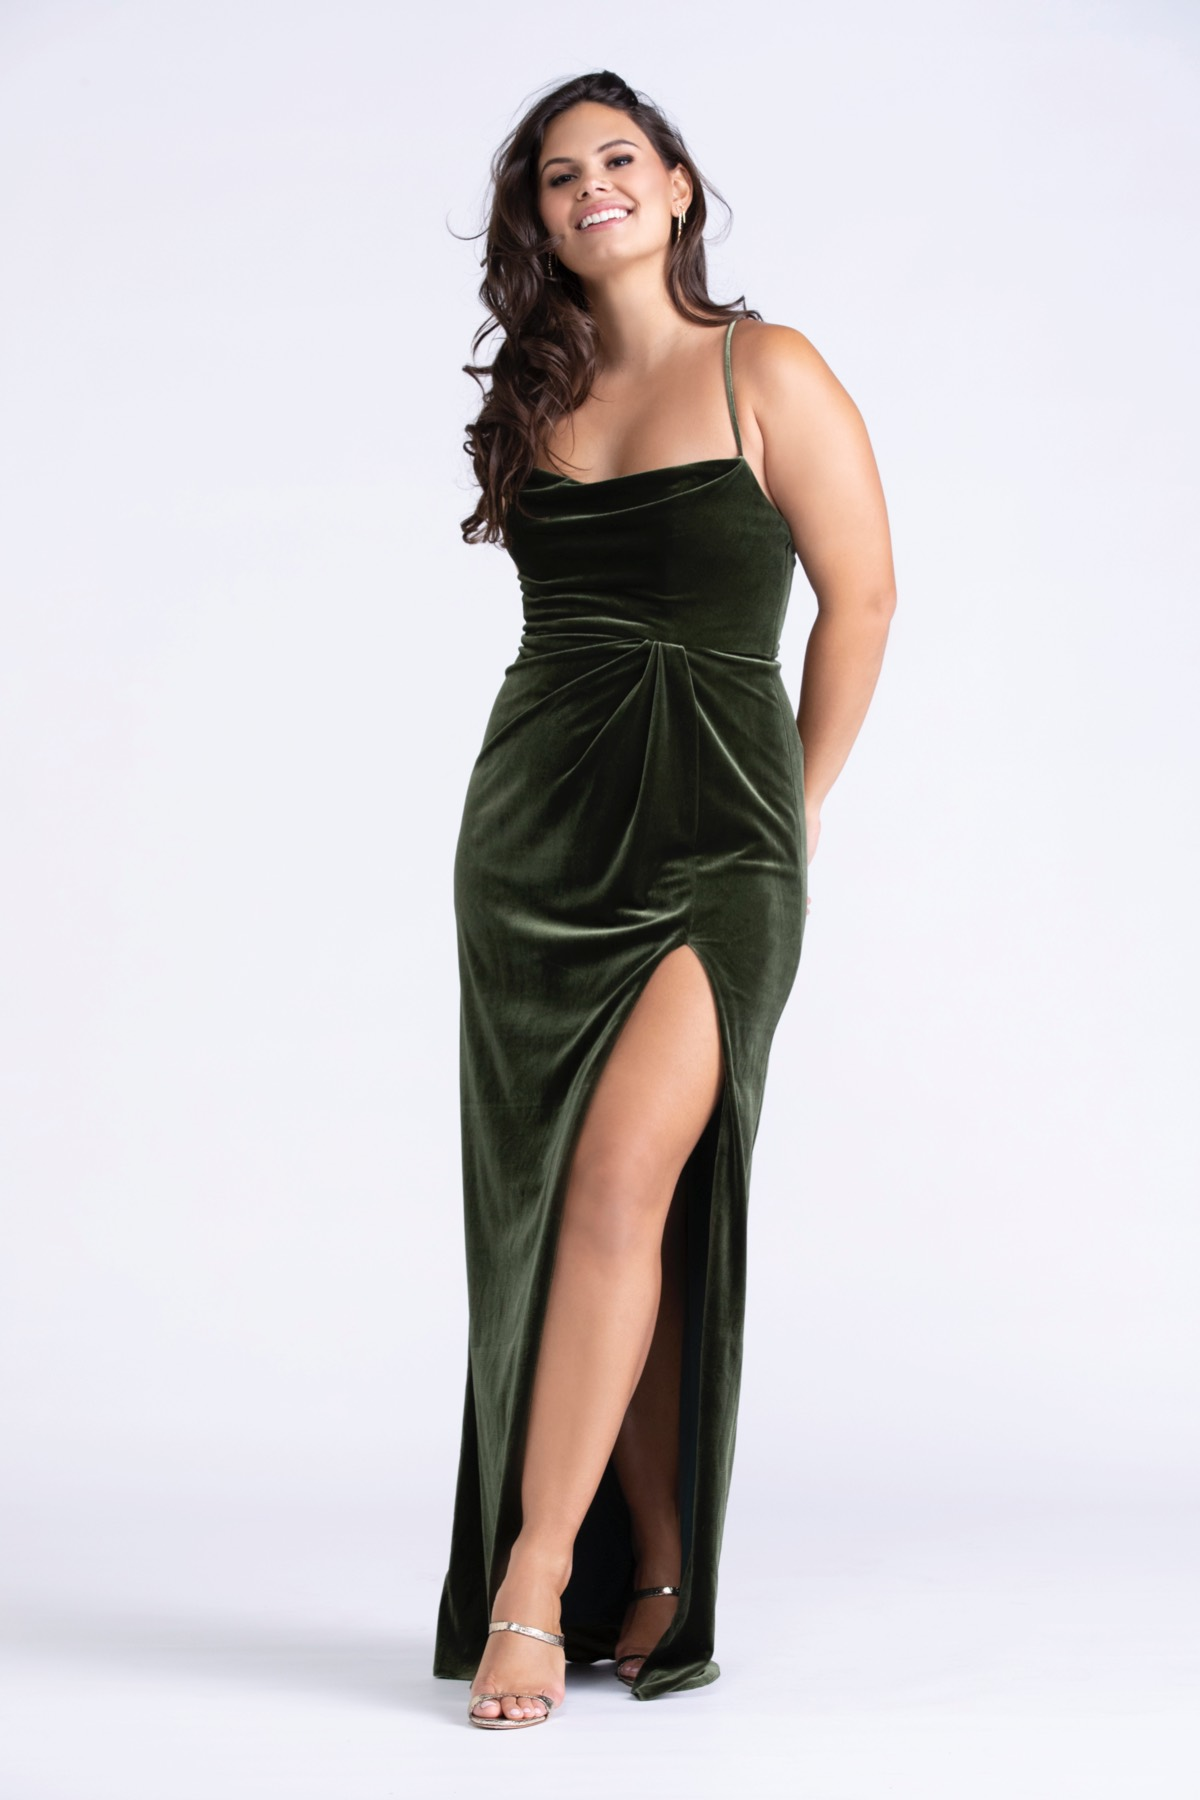 Give your girls the gift of a stretch velvet gown accented with a strappy back. Our vinca stretch velvet is lined in a knit fabric giving the gowns a generous amount of give.